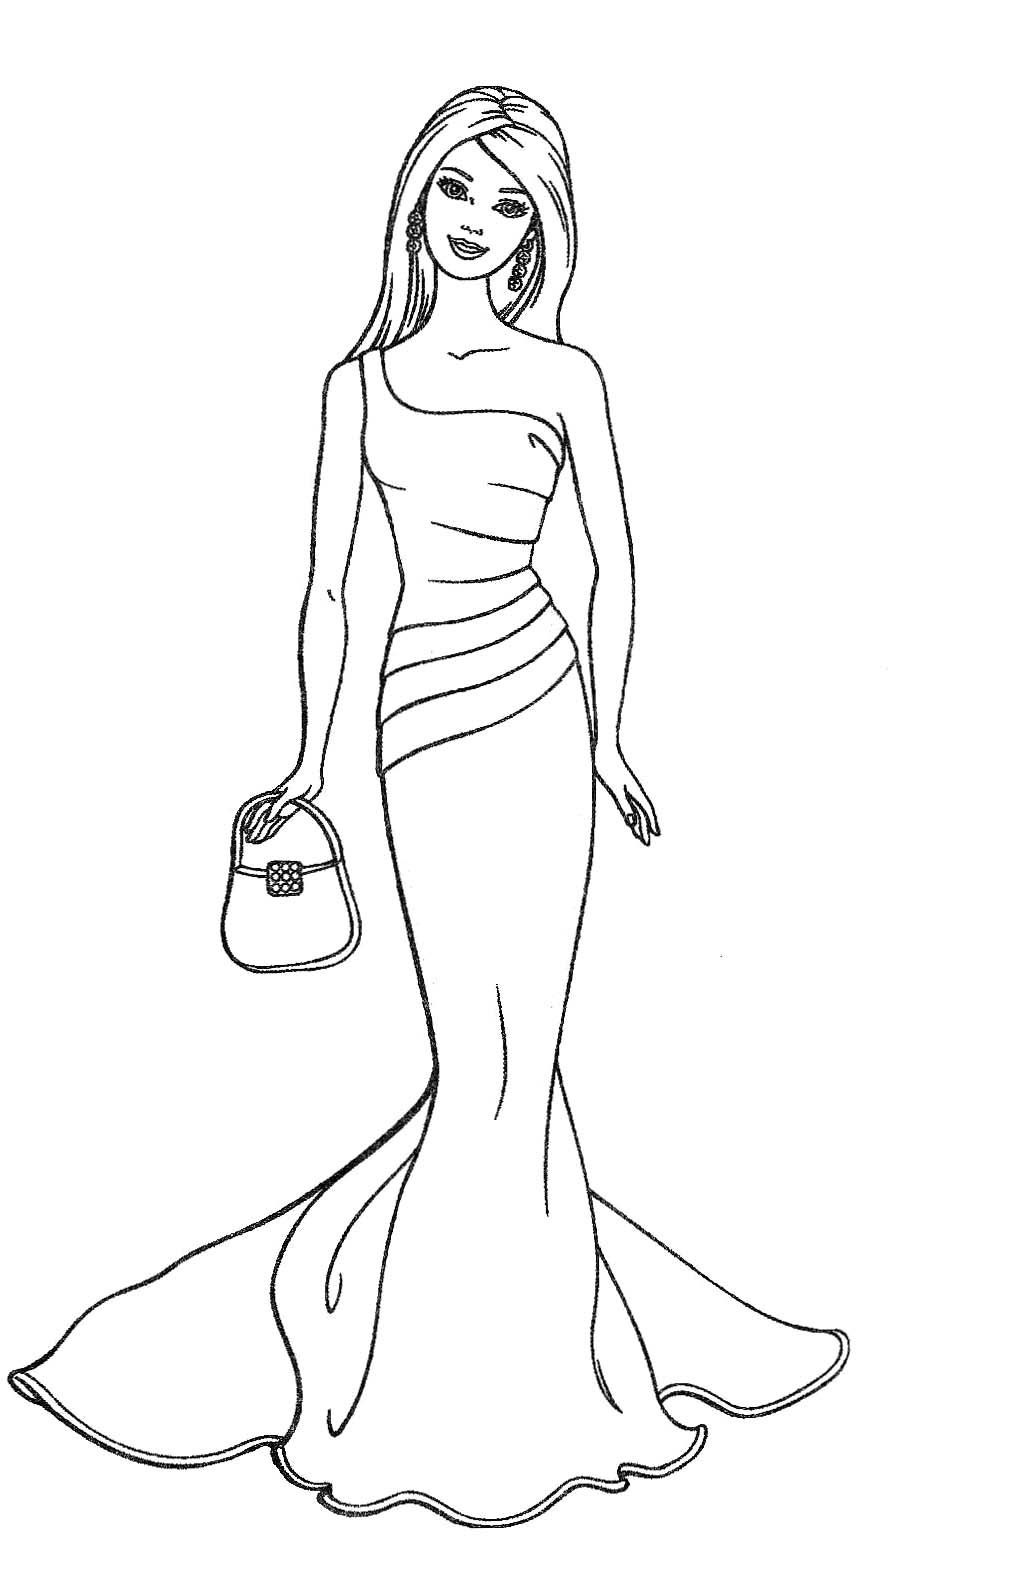 Best ideas about Barbie Coloring Sheets For Girls Printable . Save or Pin Barbie Coloring Pages Printable To Download Now.